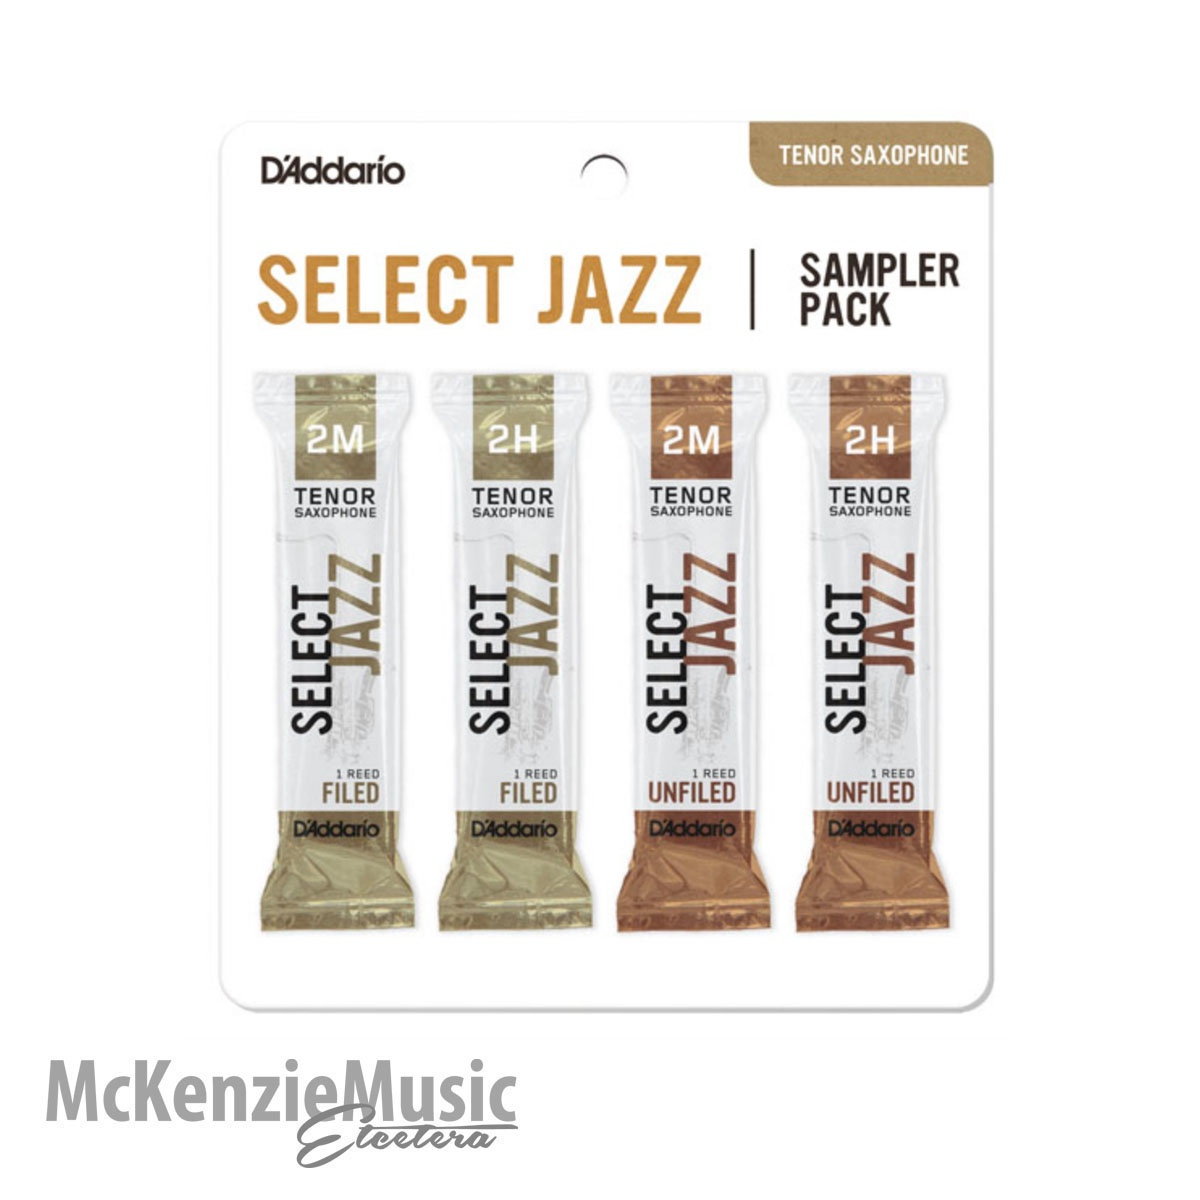 D'Addario Select Jazz Tenor Sax Reed Sample Pack Size 2